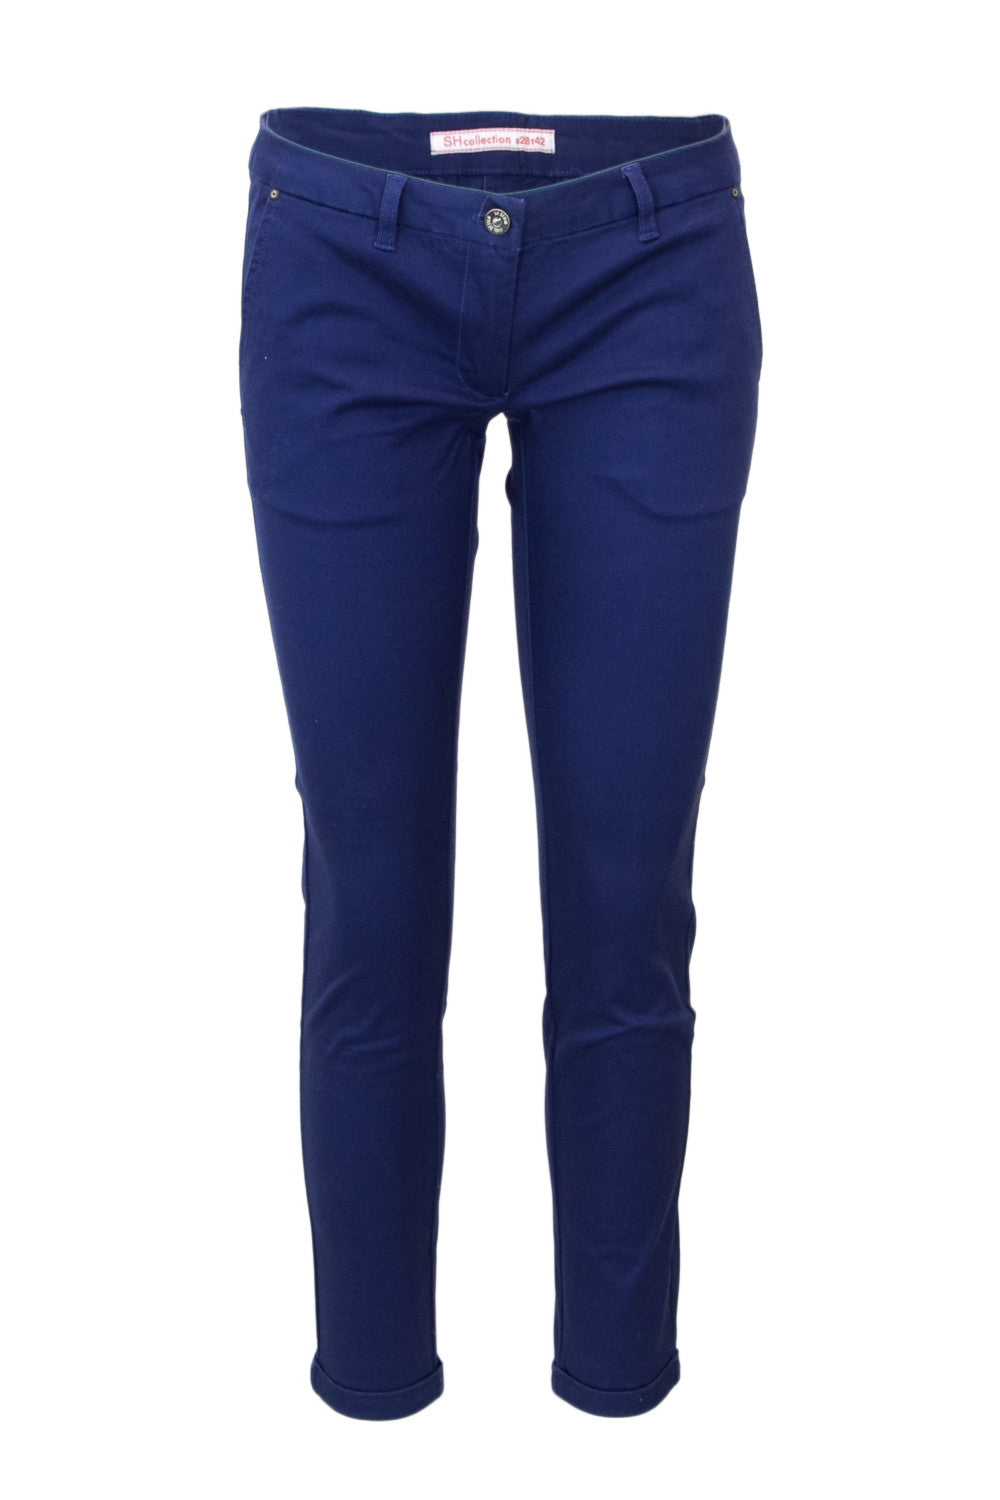 S.h. Woman Trousers - SisBrothers